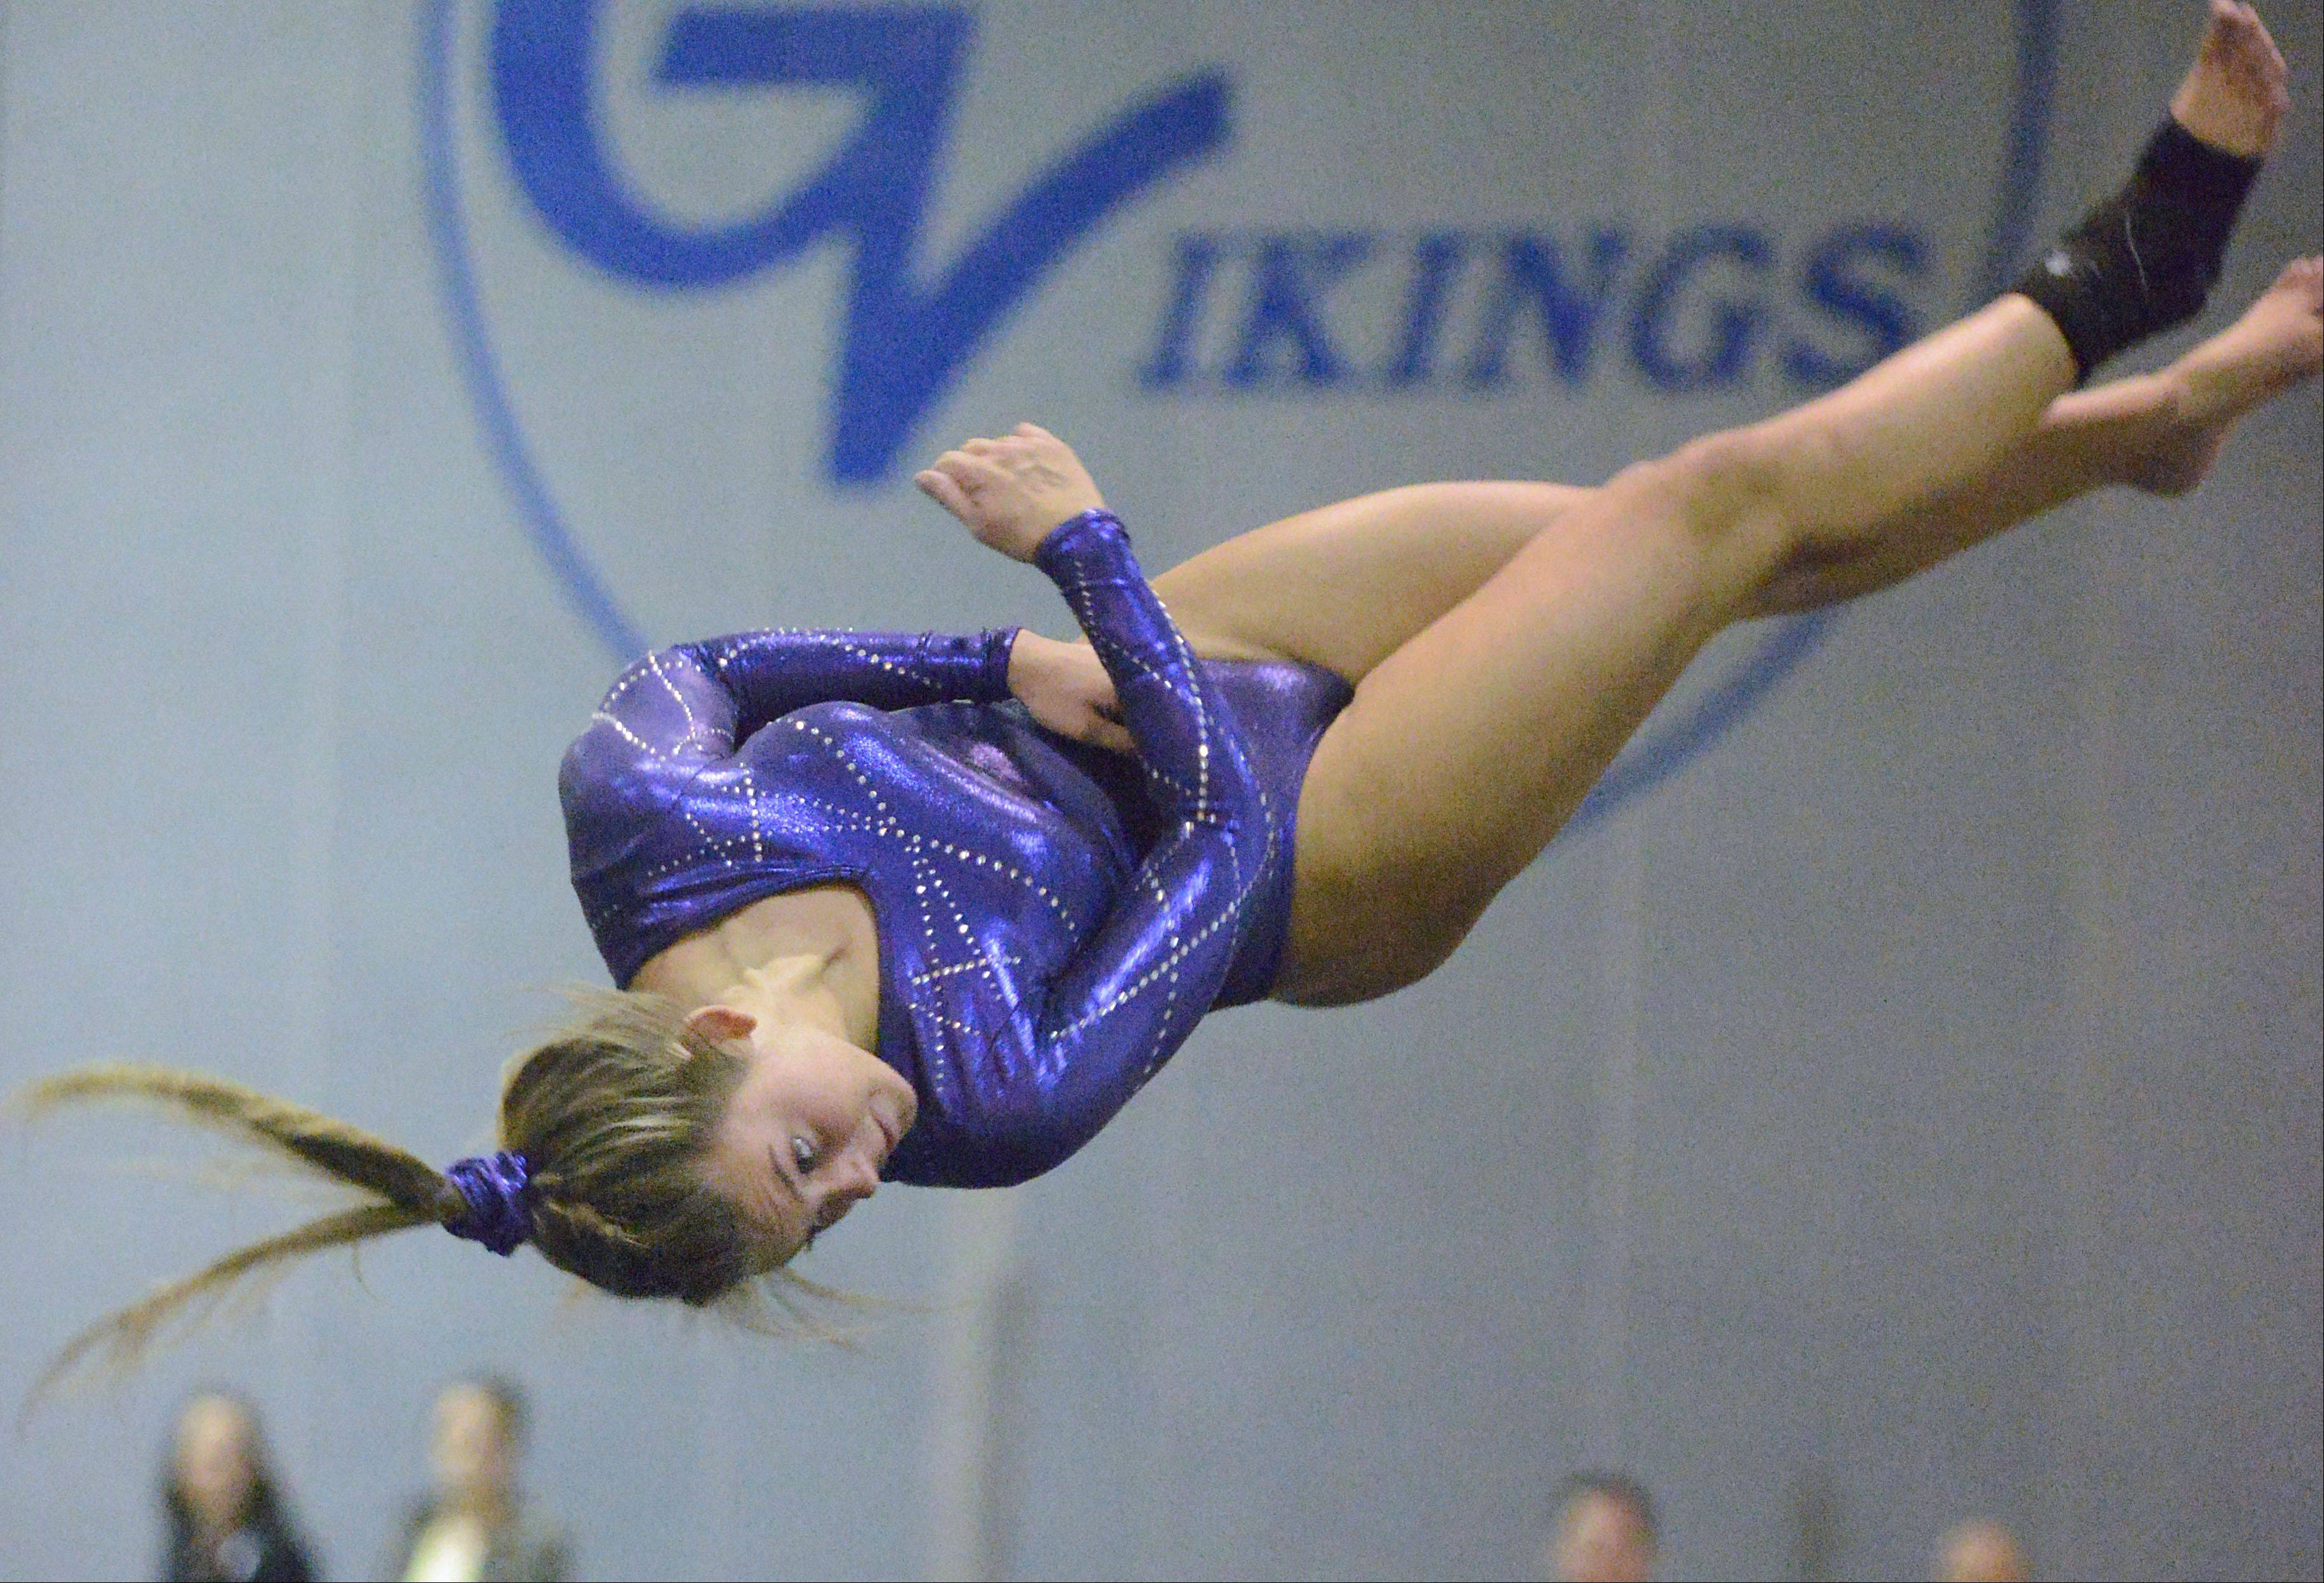 St. Charles' Jesi Ortiz twists in mid air while performing her floor exercise on Wednesday, January 9.